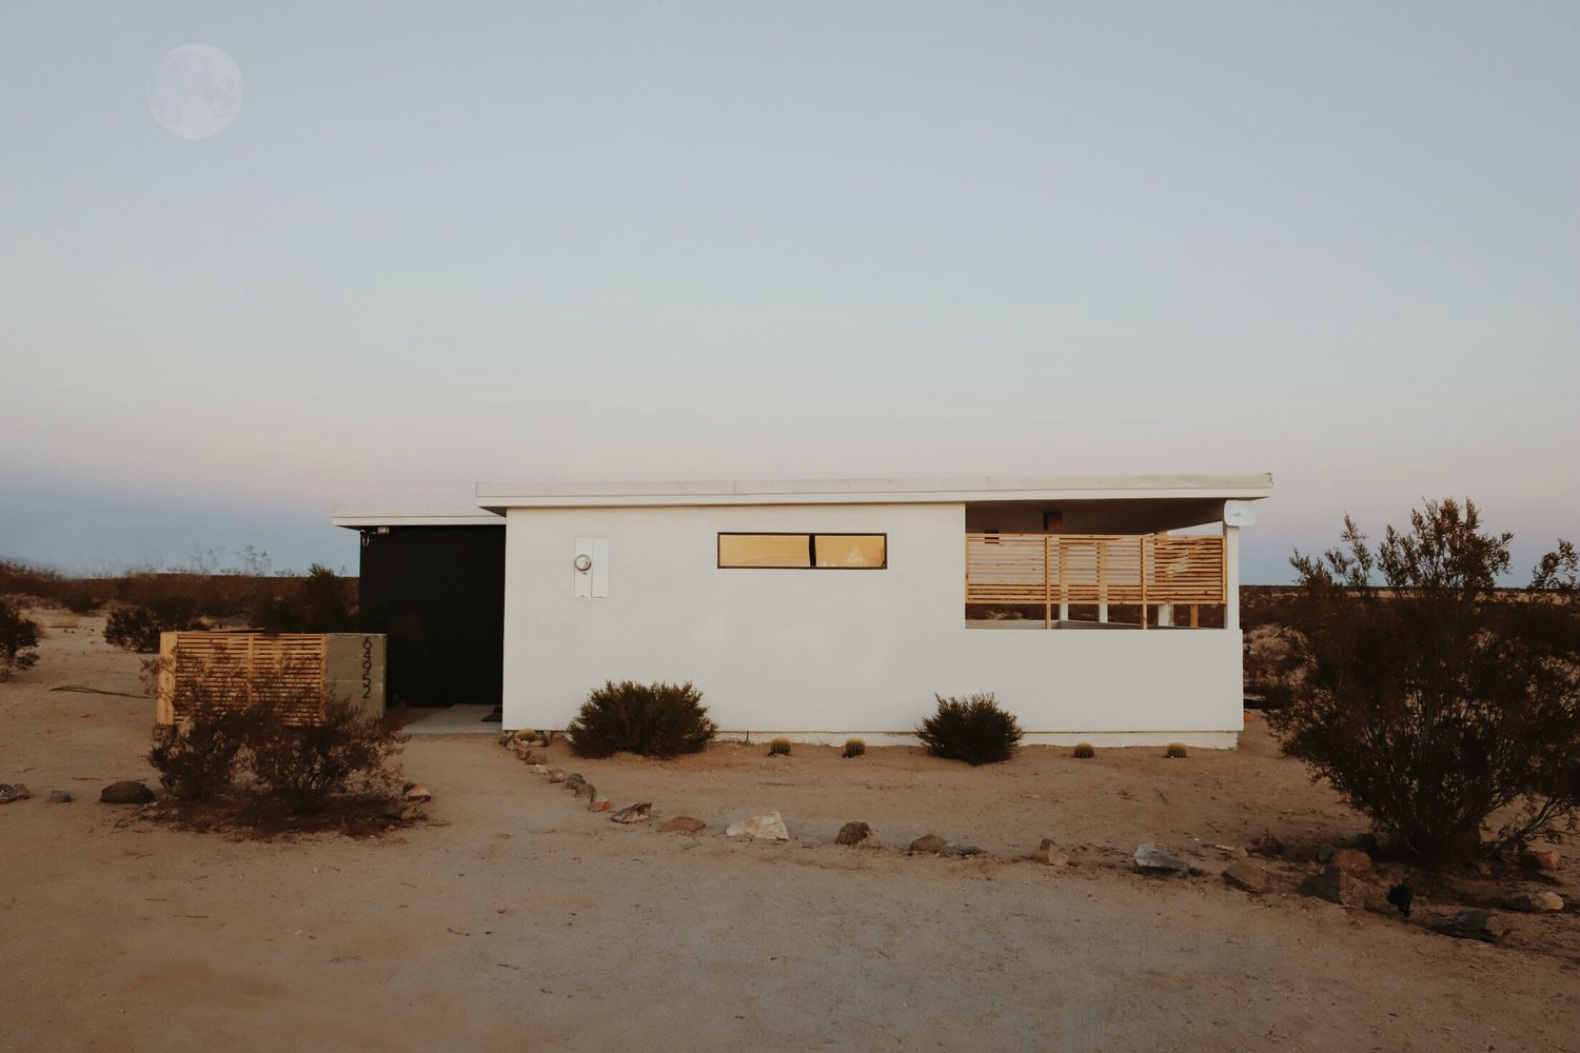 Couple converts $7,000 Joshua Tree cabin into a sophisticated desert oasis